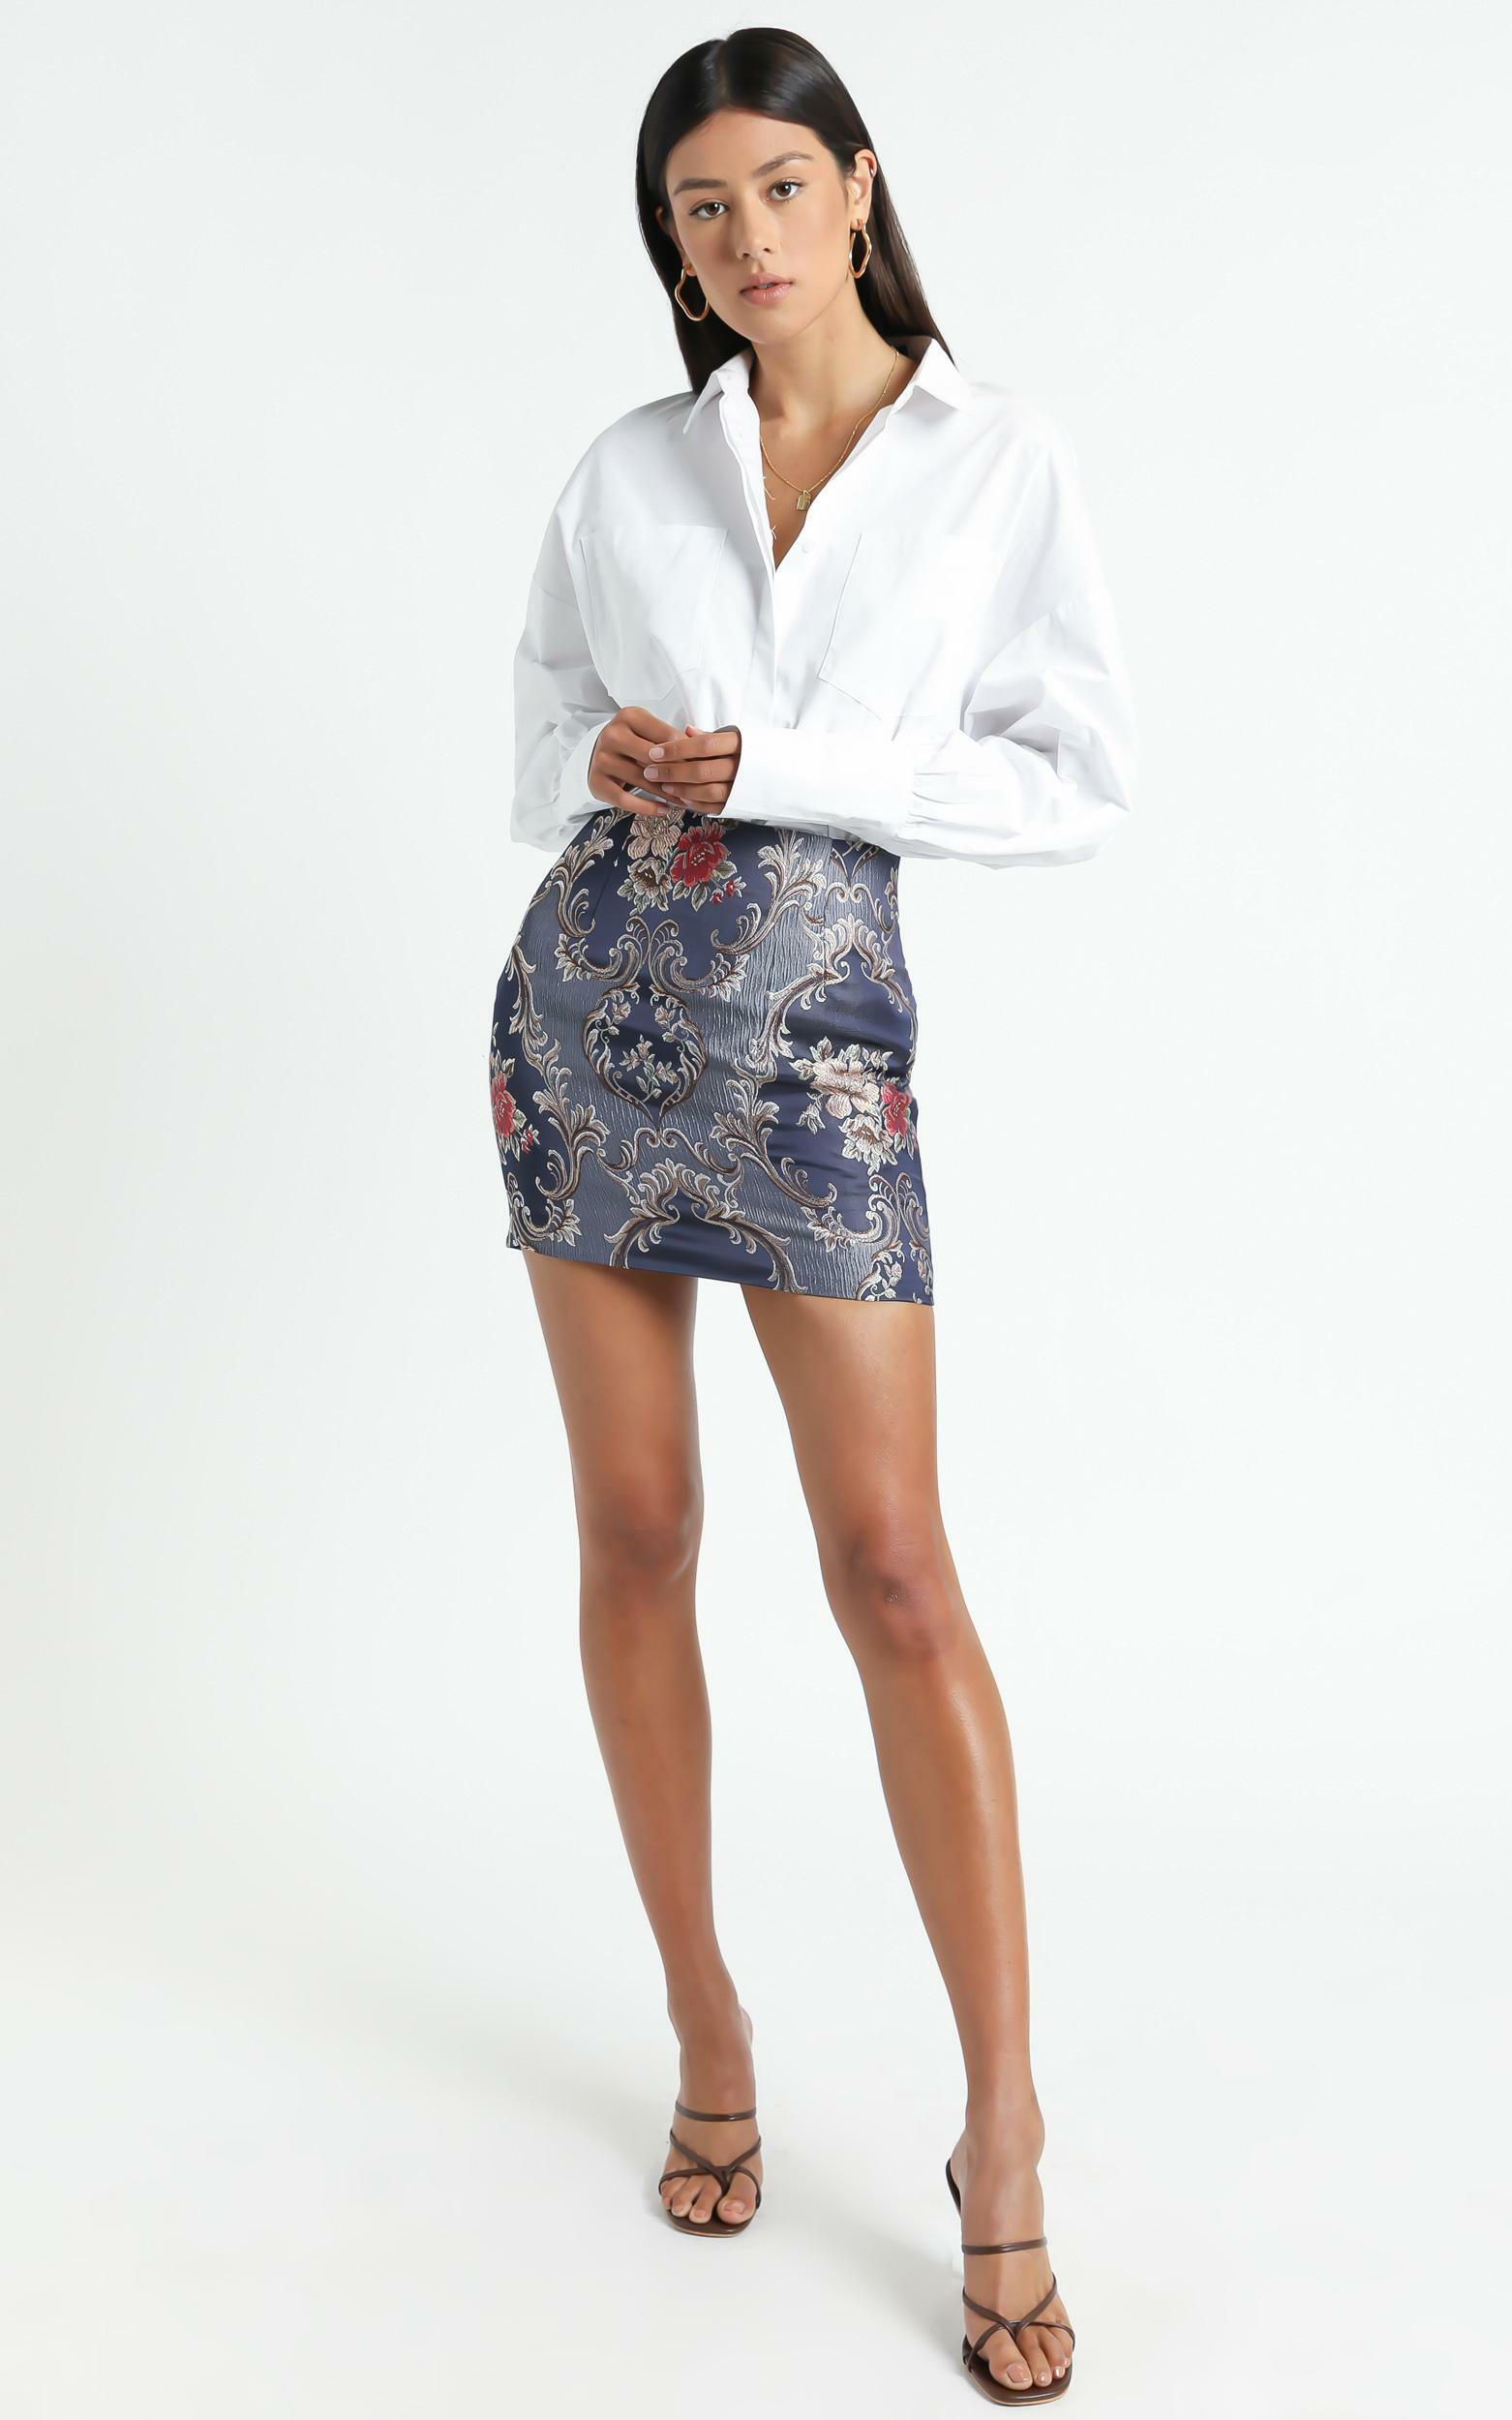 The Carrie Top in White - 04, WHT1, hi-res image number null